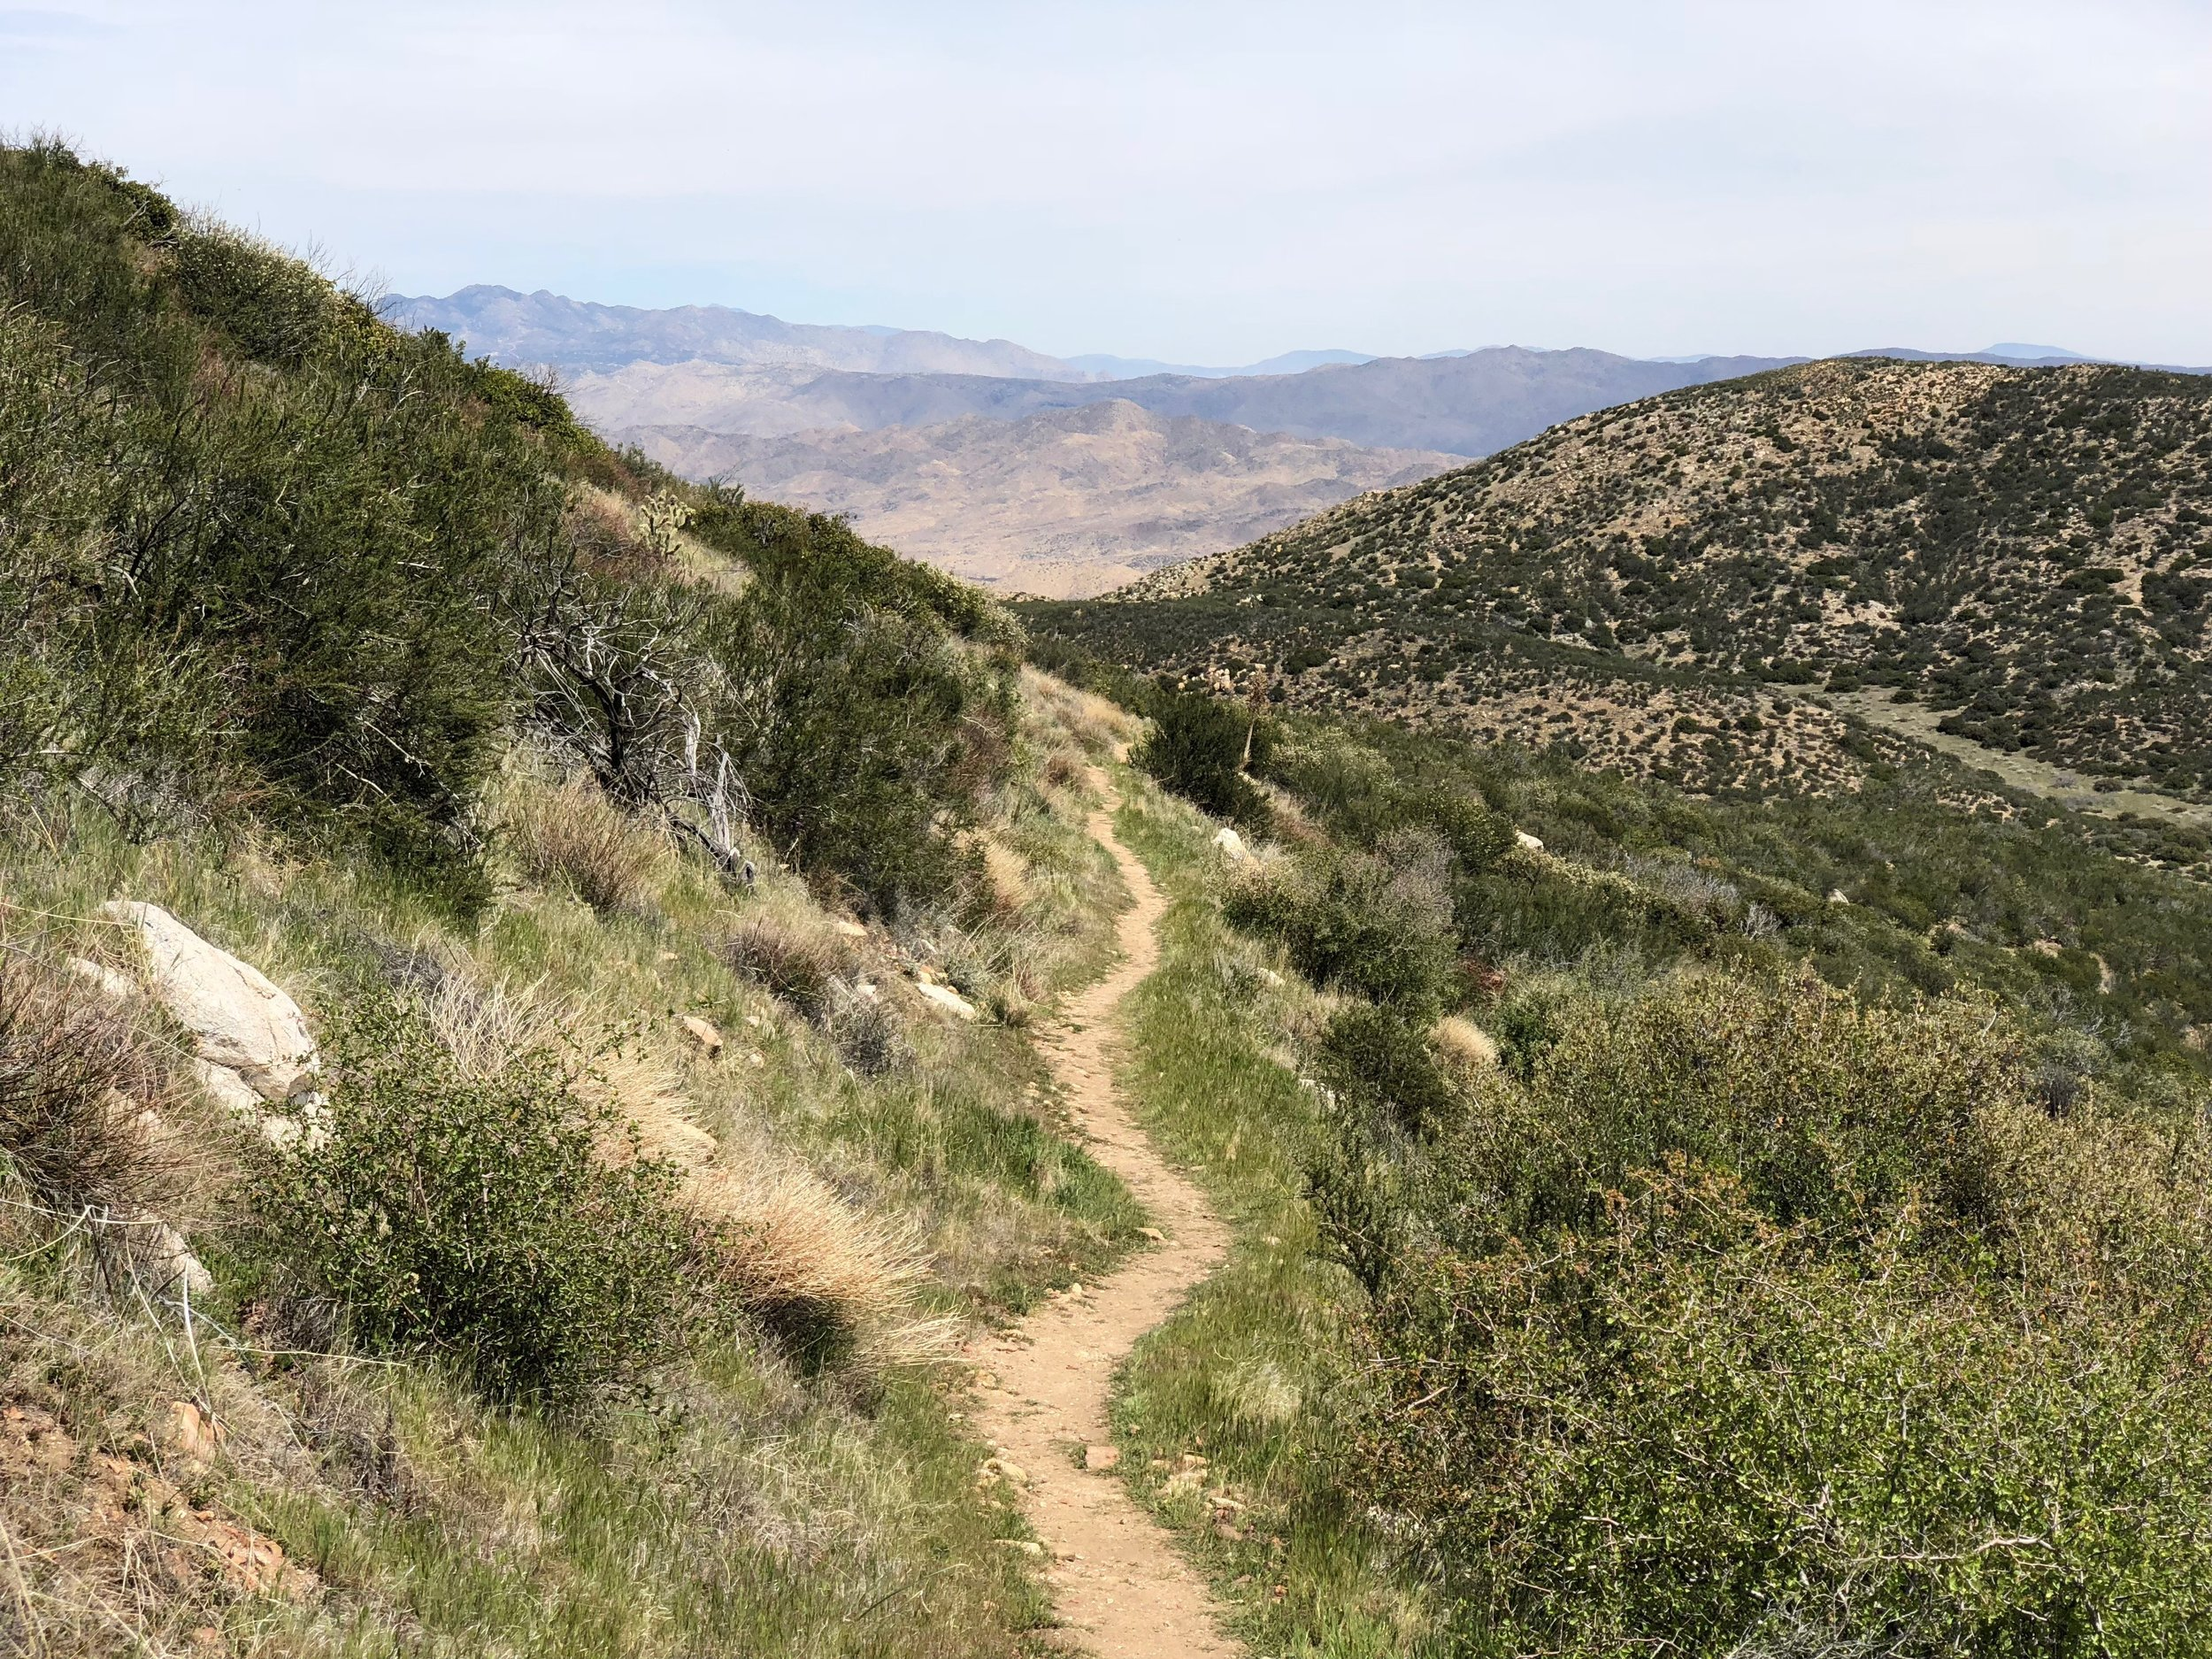 Typical section of the trail.